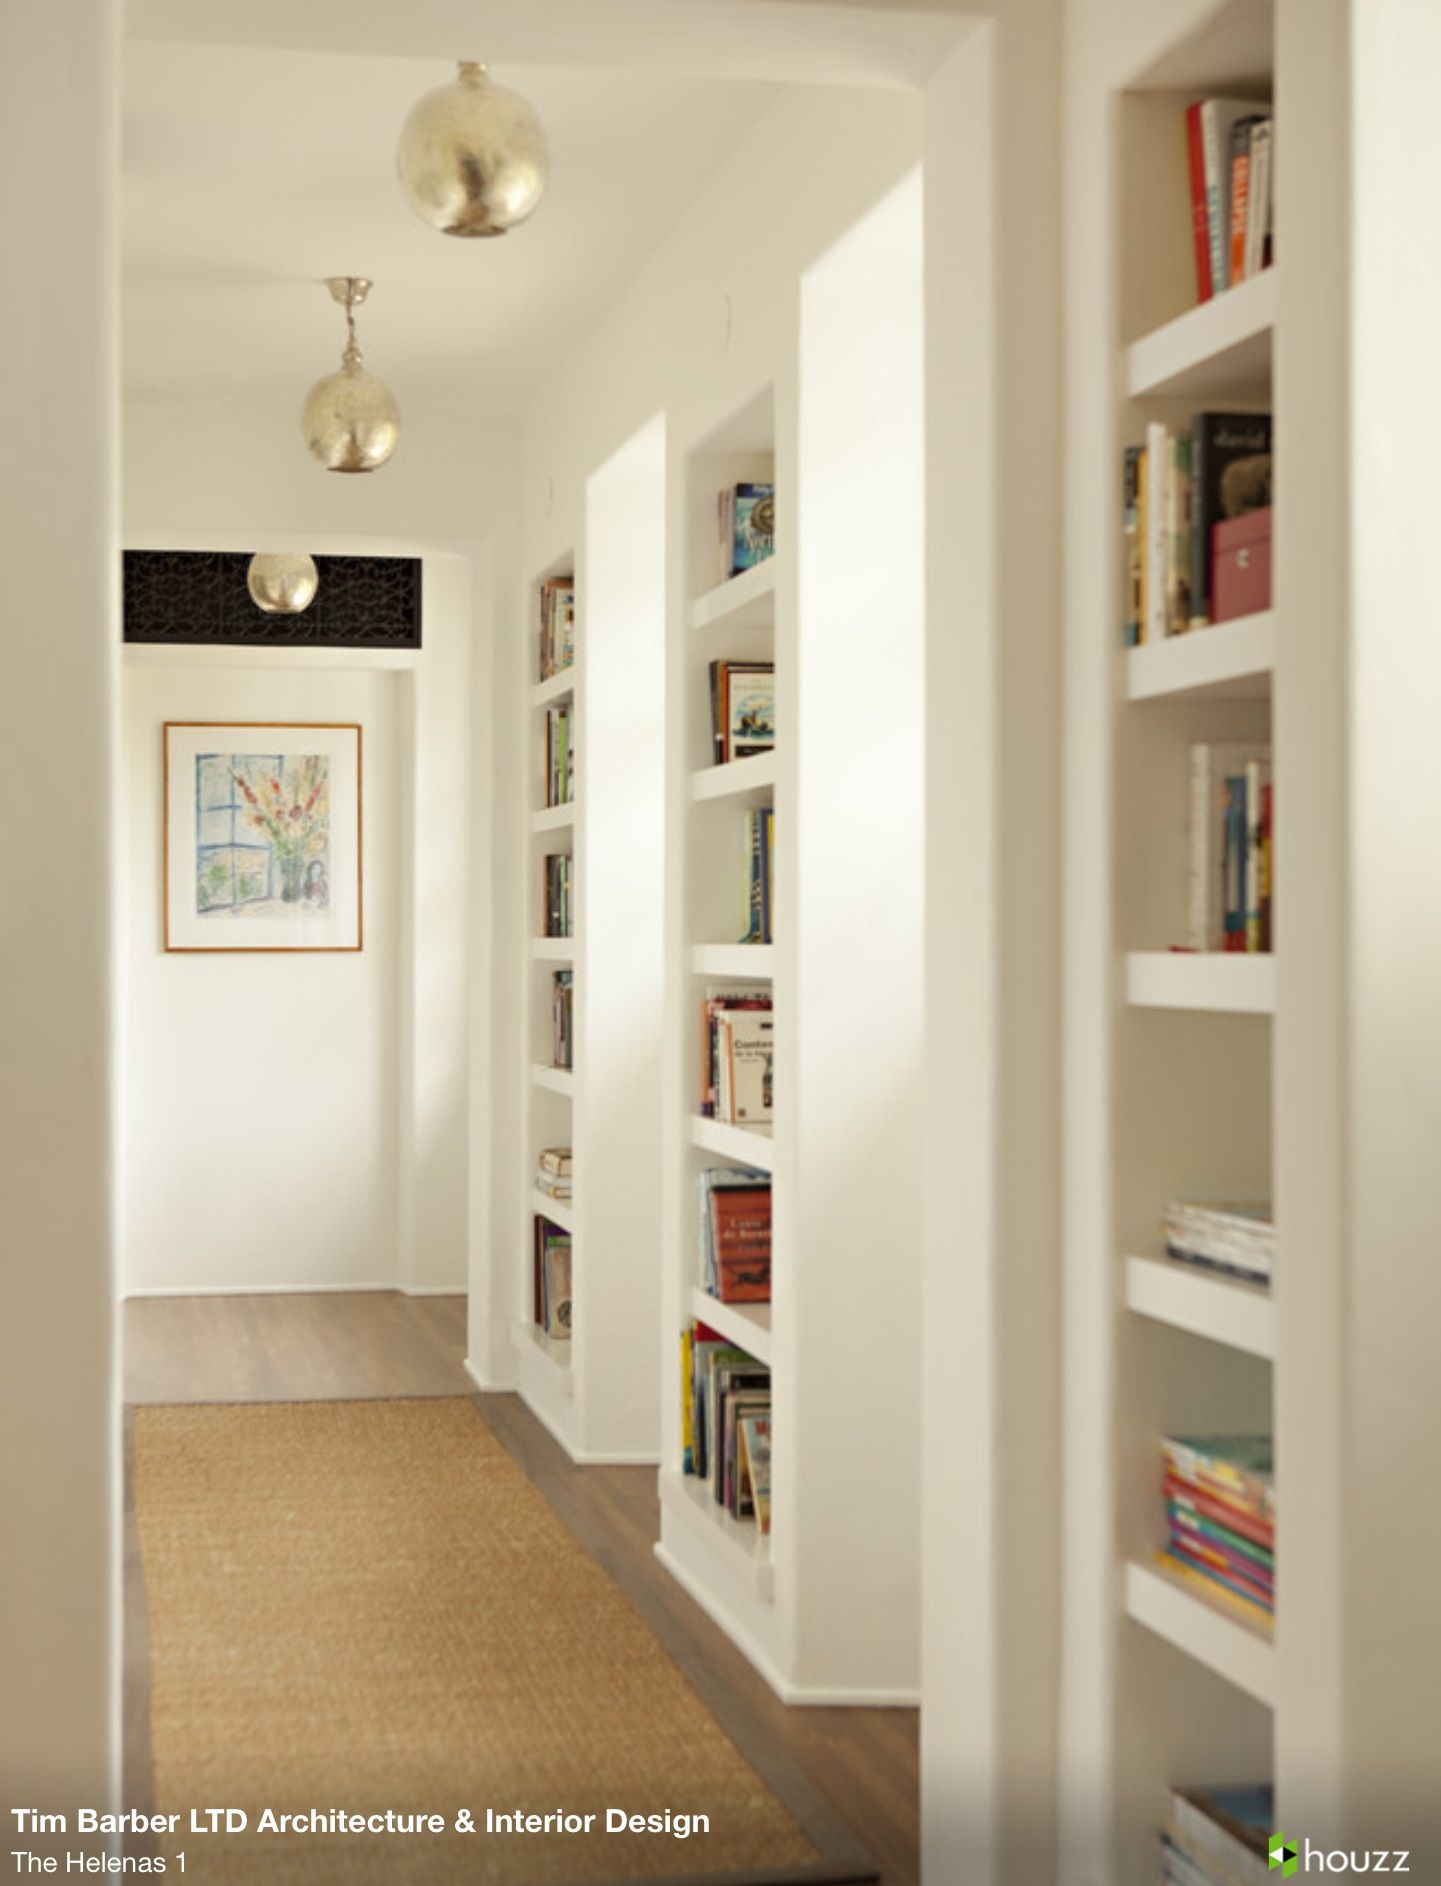 End of hallway decor  Pin by Ana Cobiella on ideas para hacer  Pinterest  Ideas para and